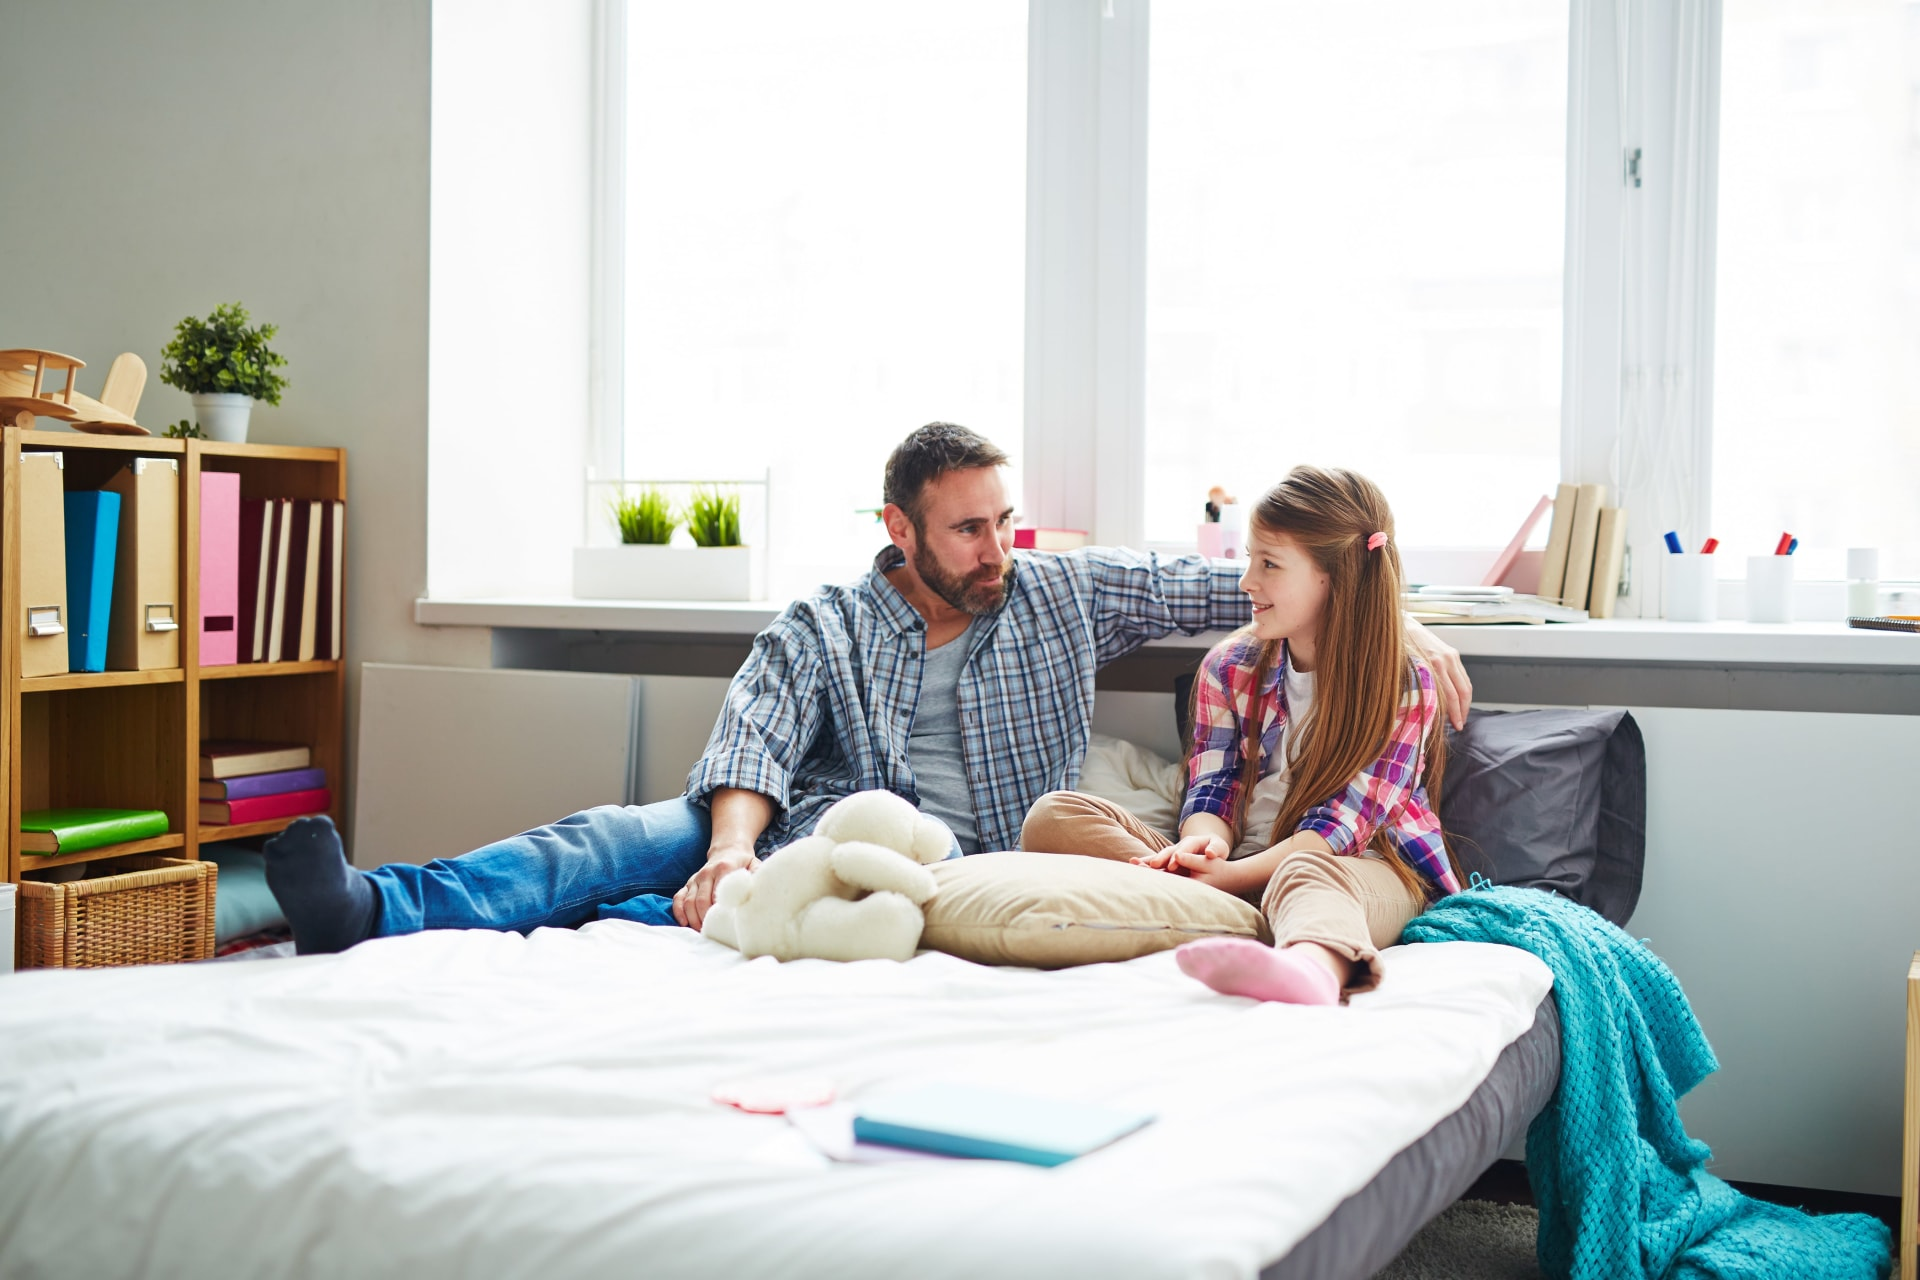 Father and daughter talking while sitting on a bed